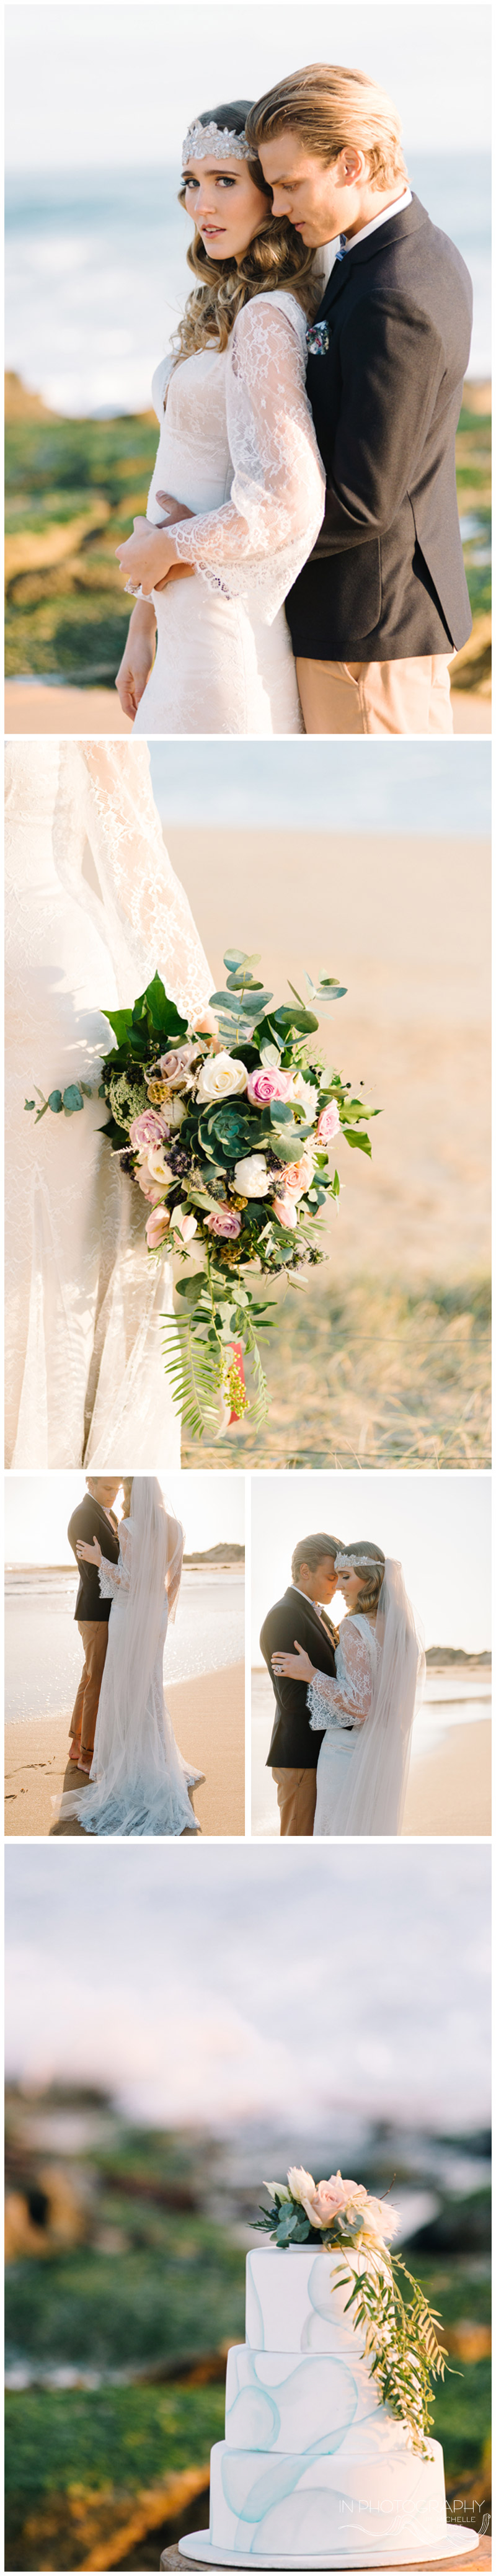 romantic beach wedding